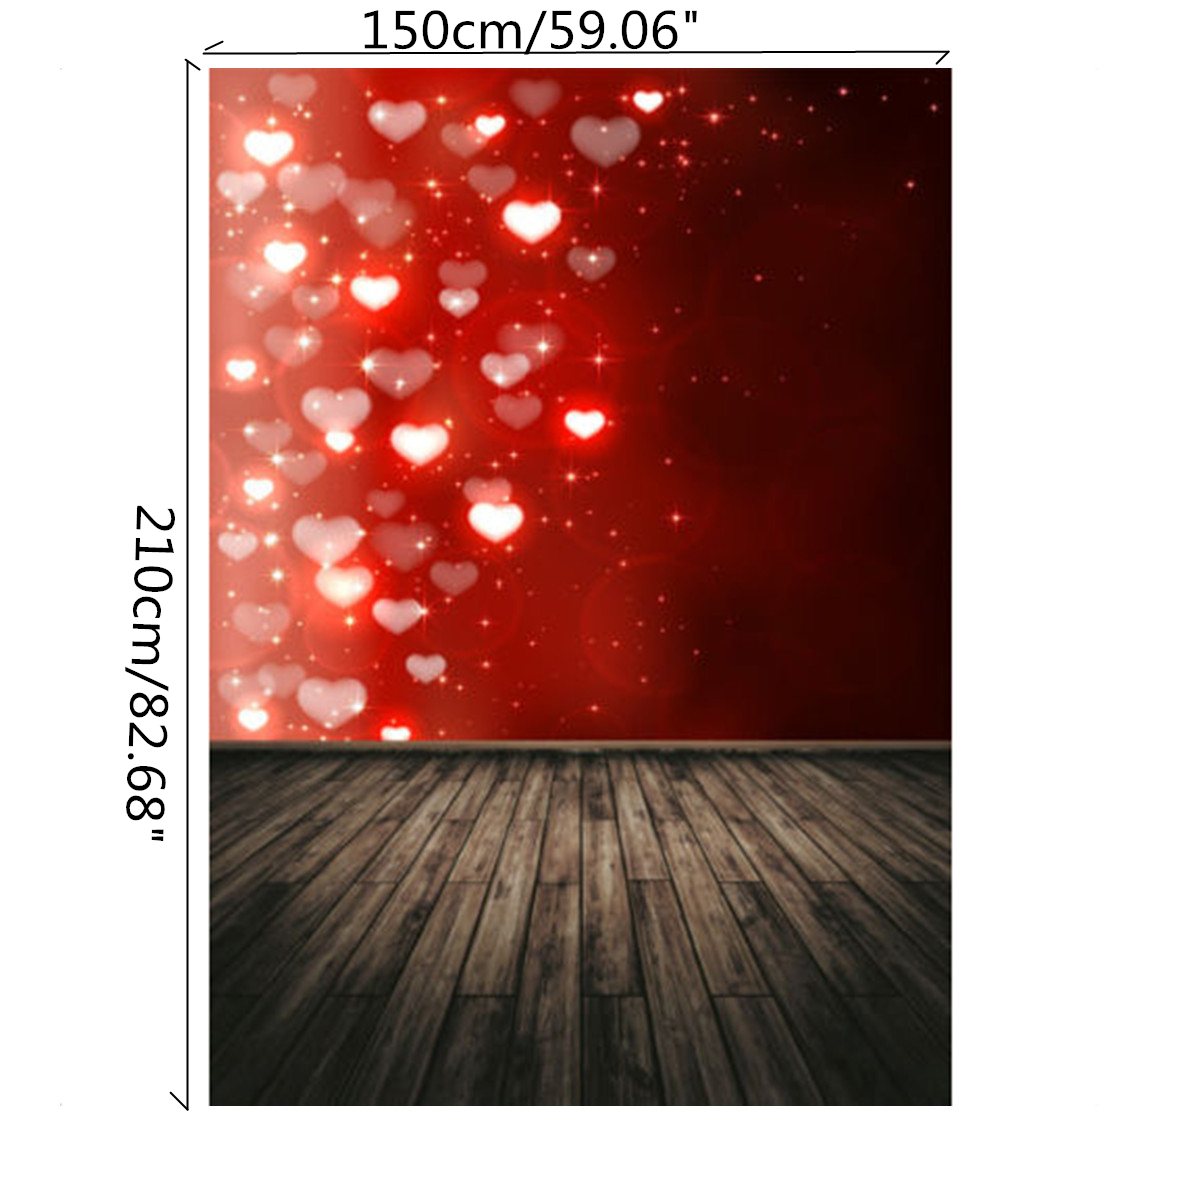 5x7FT Red Flashing Love Board Valentine's Day Theme Photography Backdrop Studio Prop Background